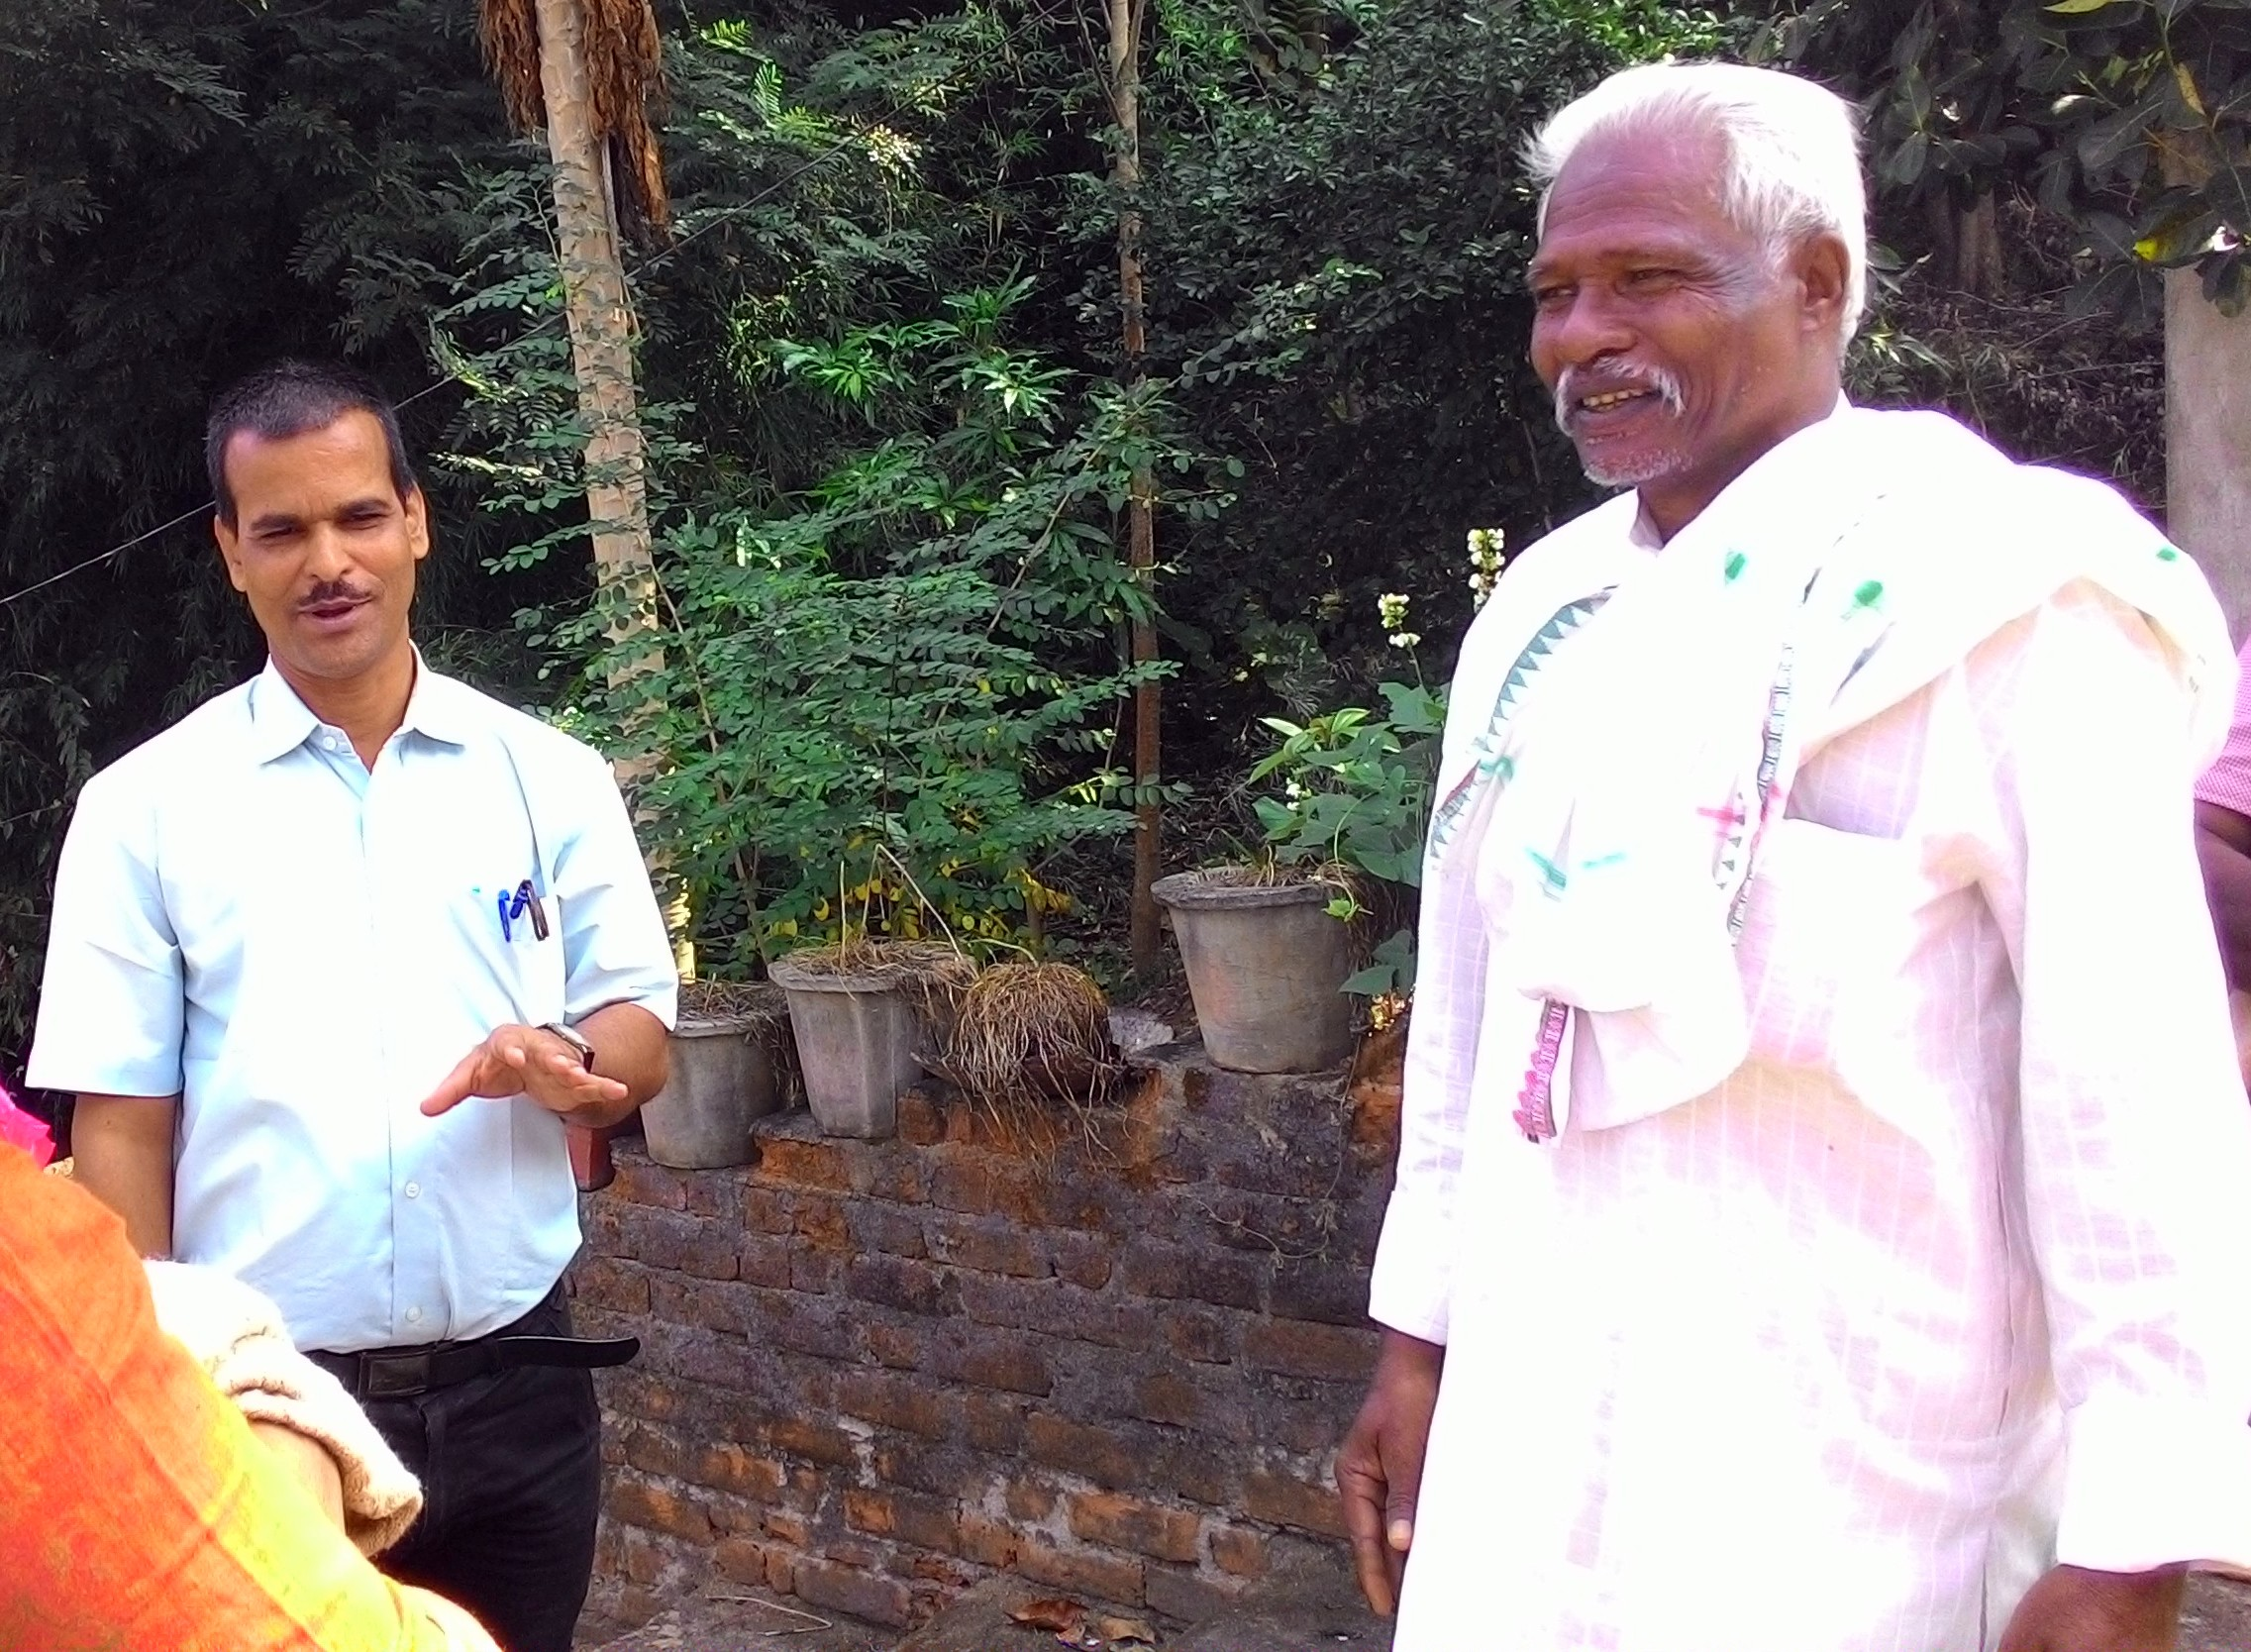 Pradeep and Pani panchayat members work together in solving water based issues